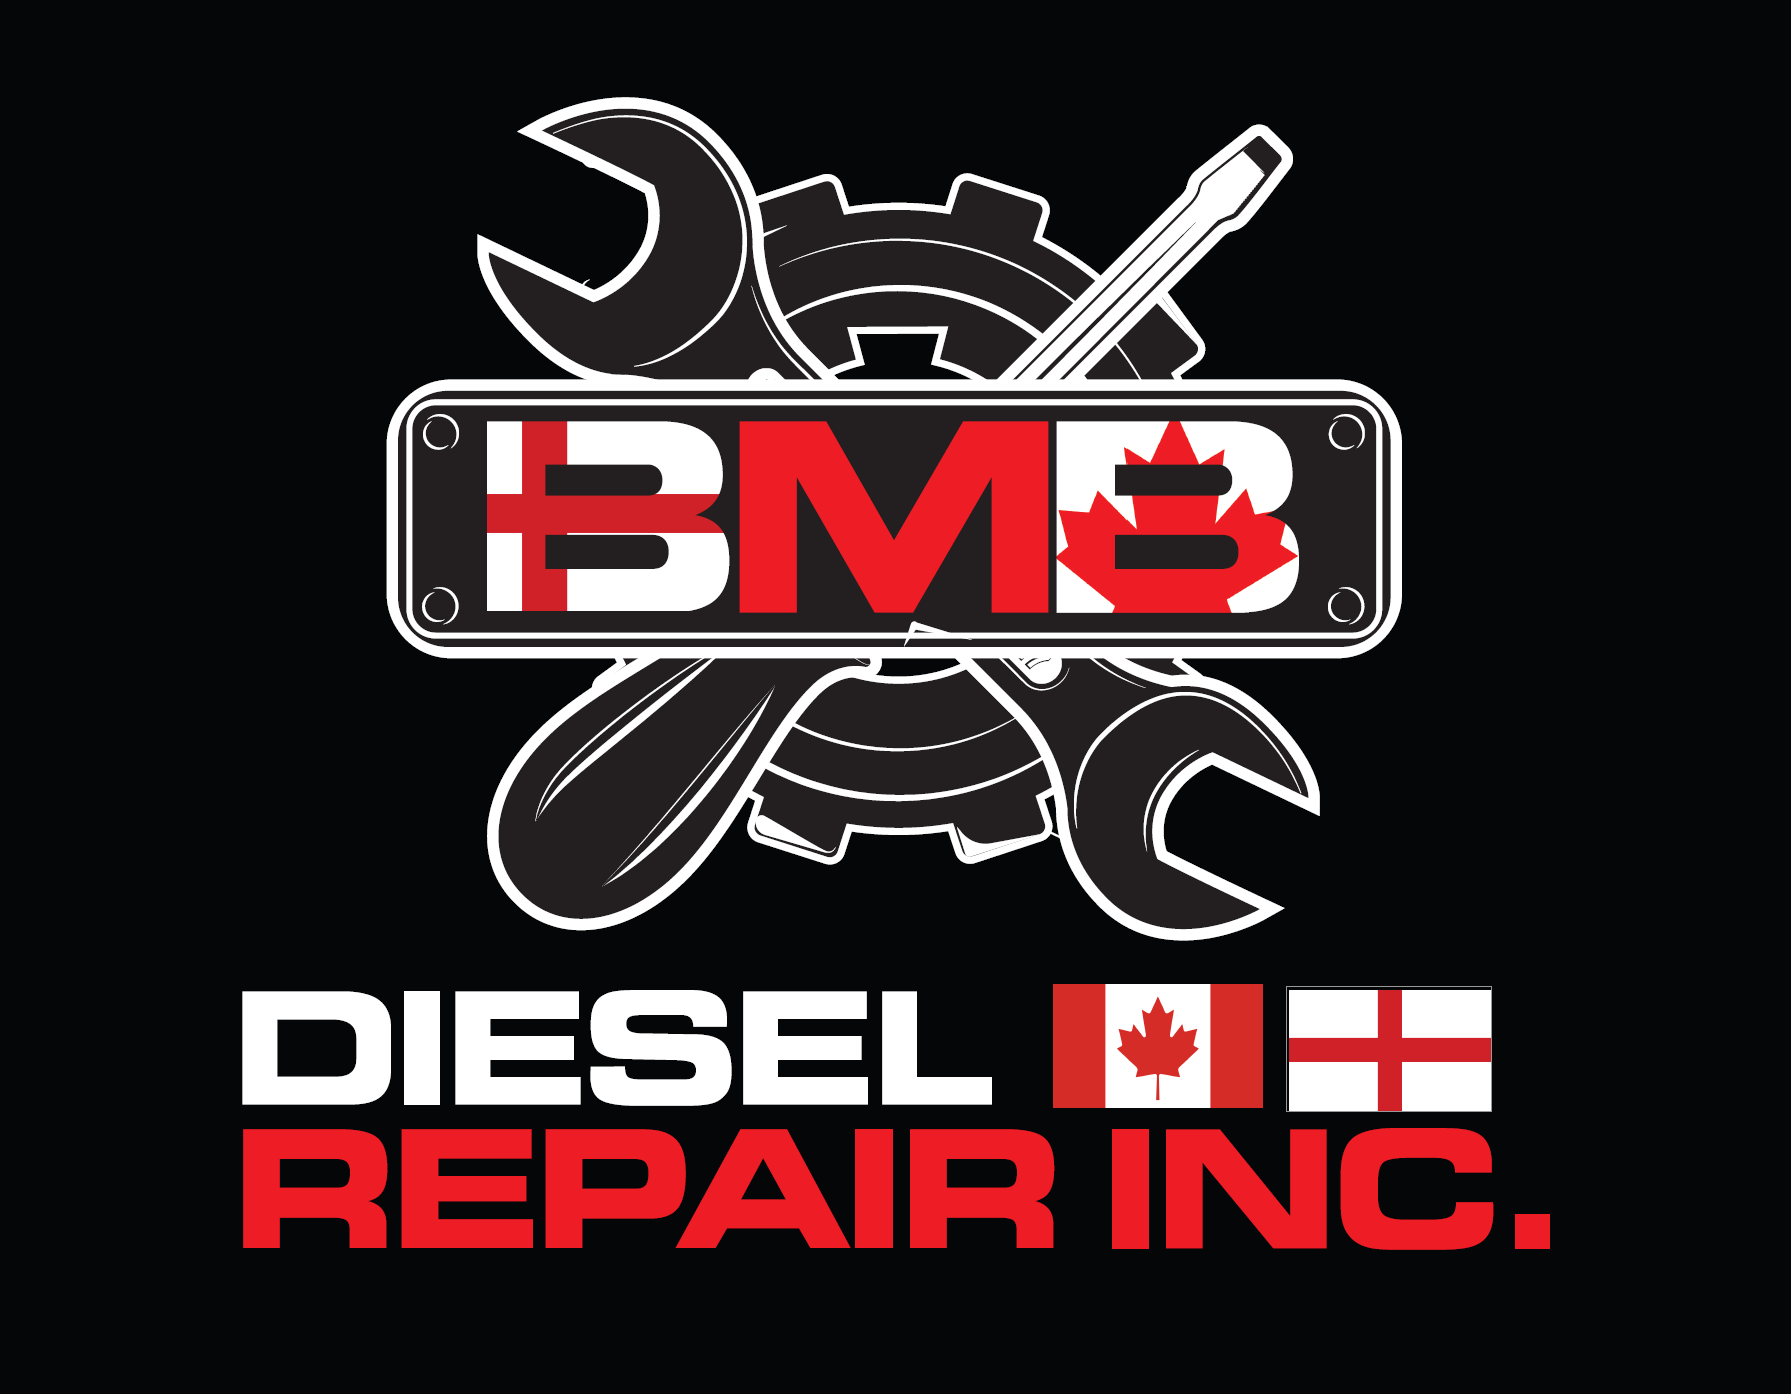 BMB Diesel Repair Inc.